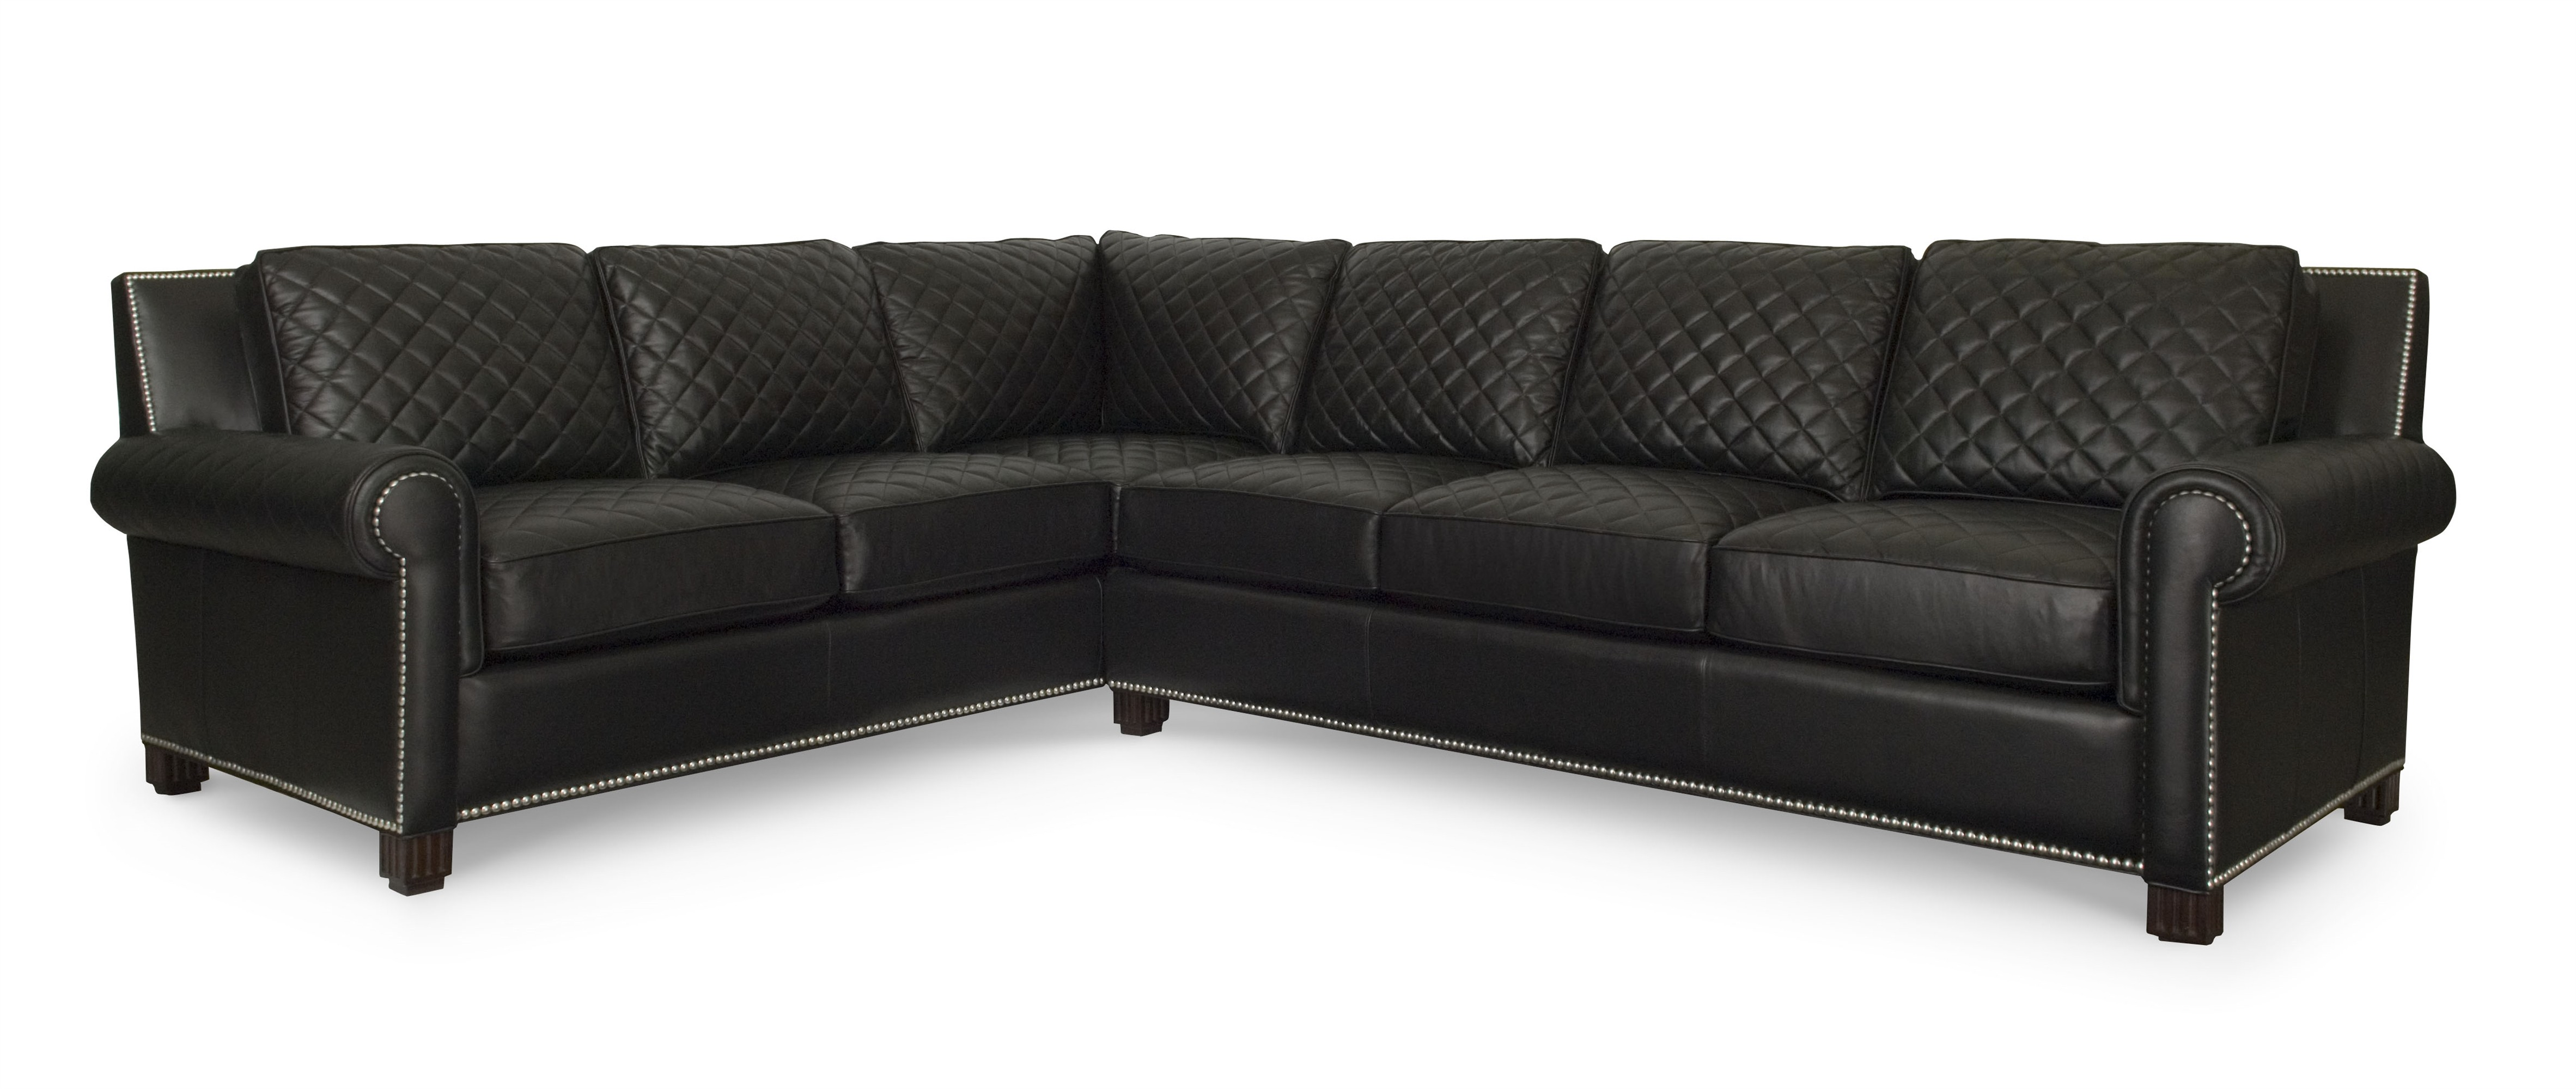 Lyndon Laf Quilted Sofa